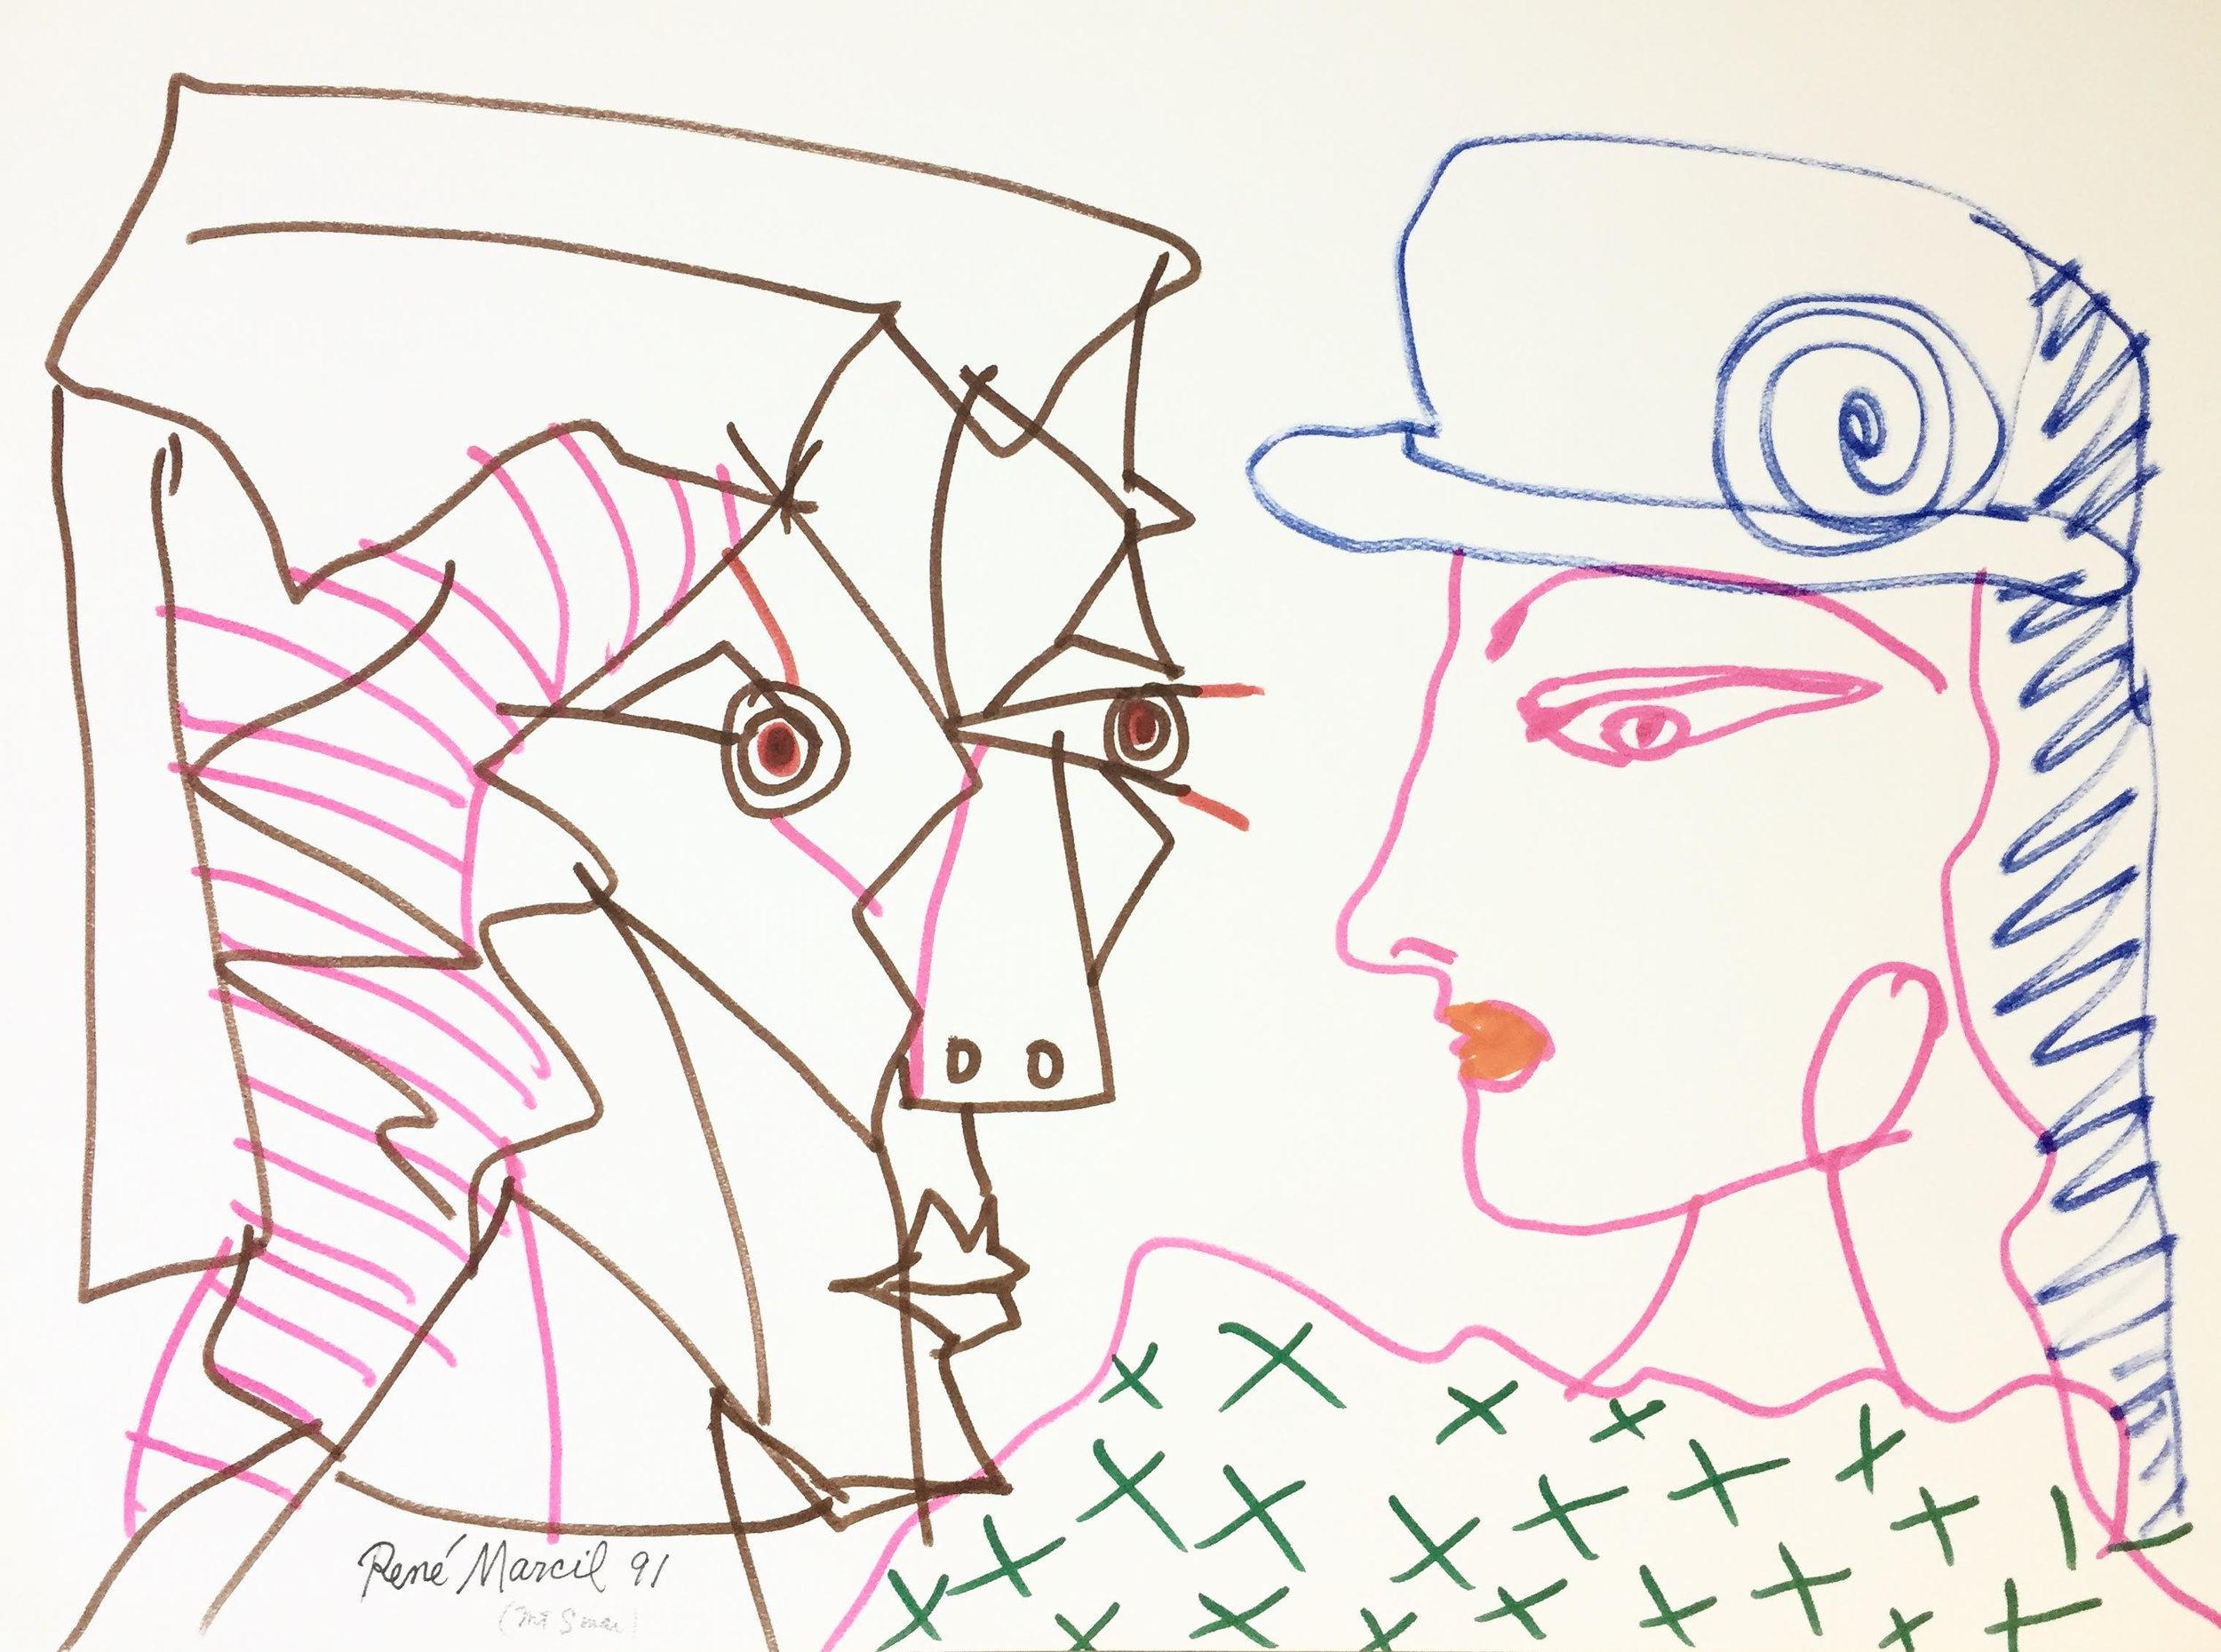 """RenÉ Marcil 'Untitled (Mt. sinai)' - marker on paper24"""" x 18""""signed by the artist, inscribed 'Mt. Sinai'unframed"""